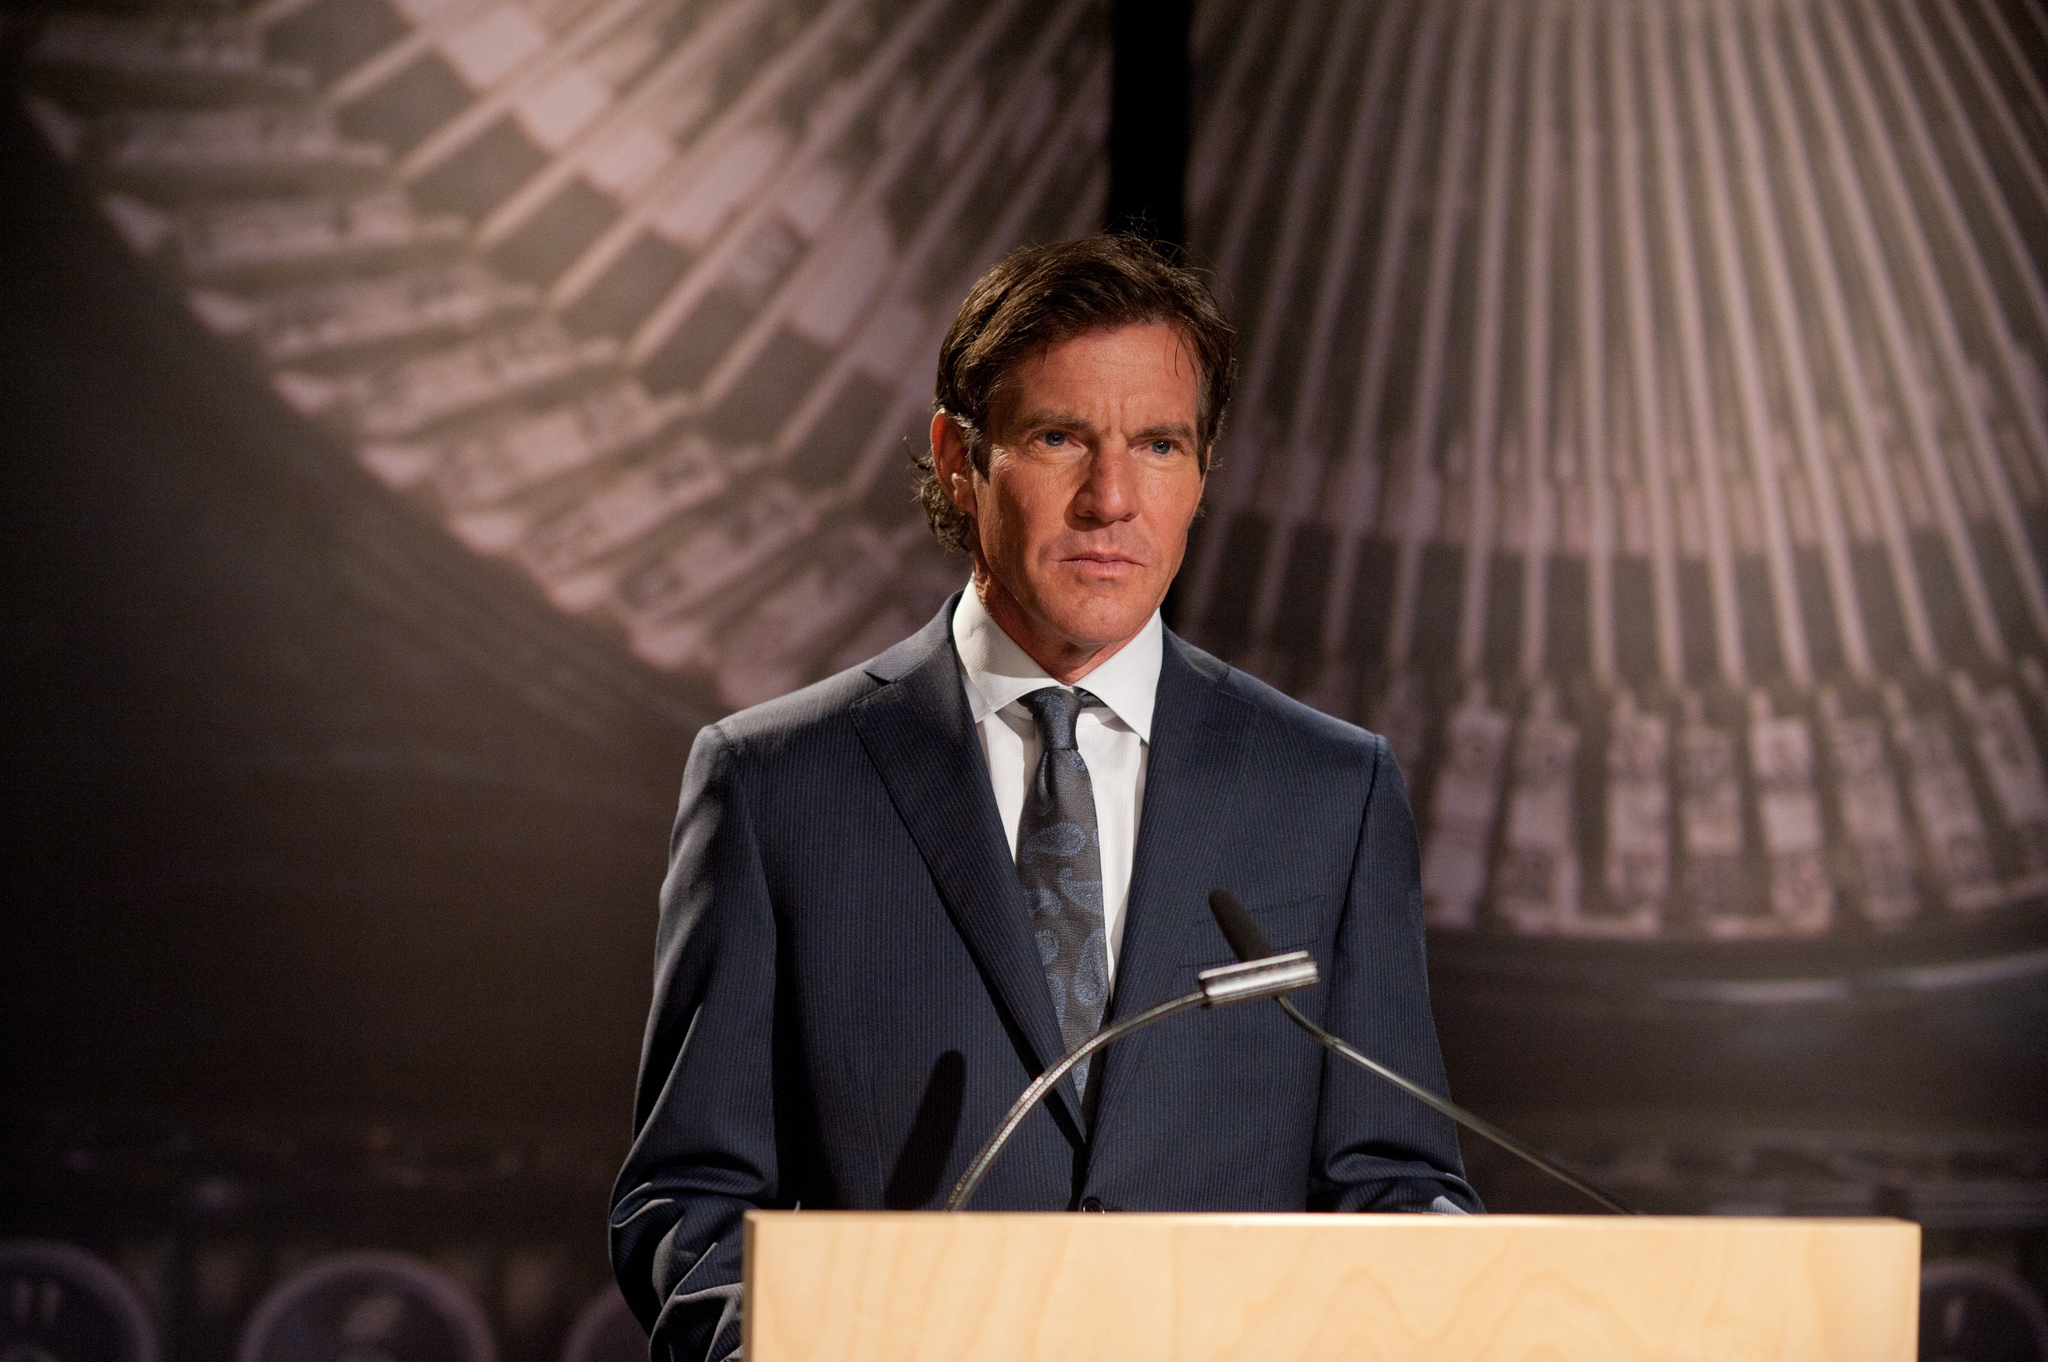 Dennis Quaid in The Words (2012)